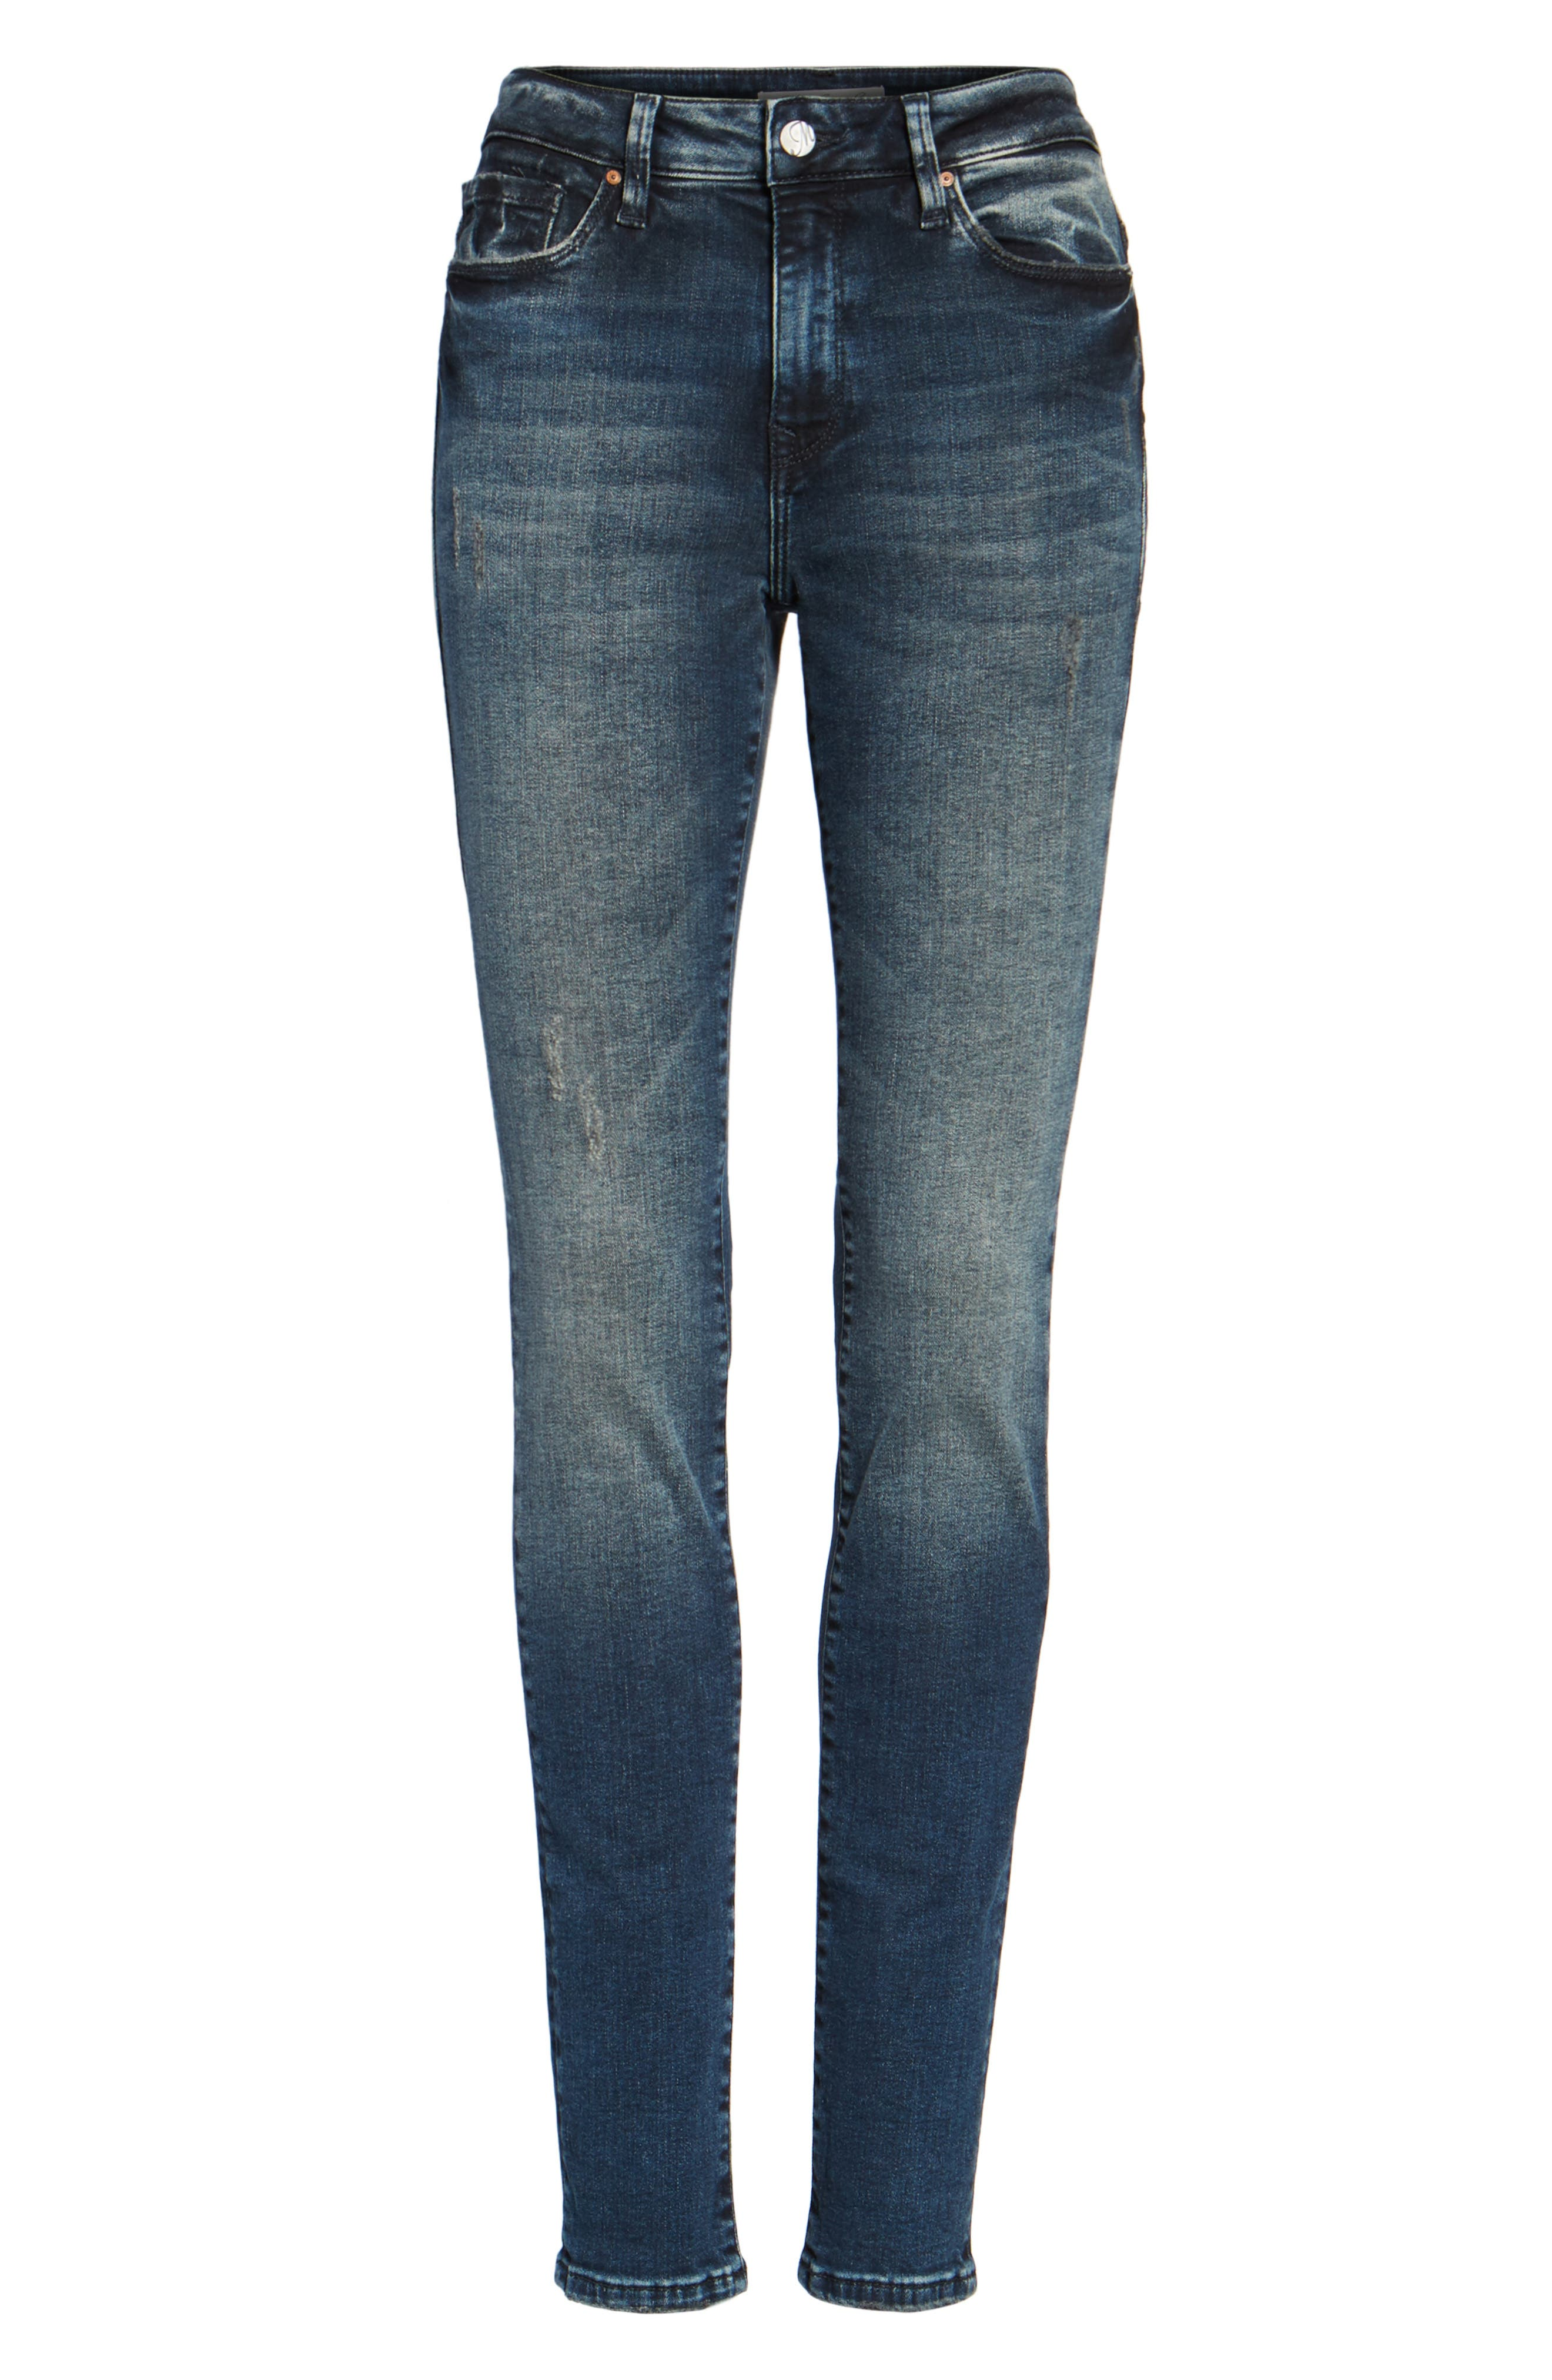 Stretch Slim High Rise Ankle Jeans,                             Alternate thumbnail 6, color,                             401